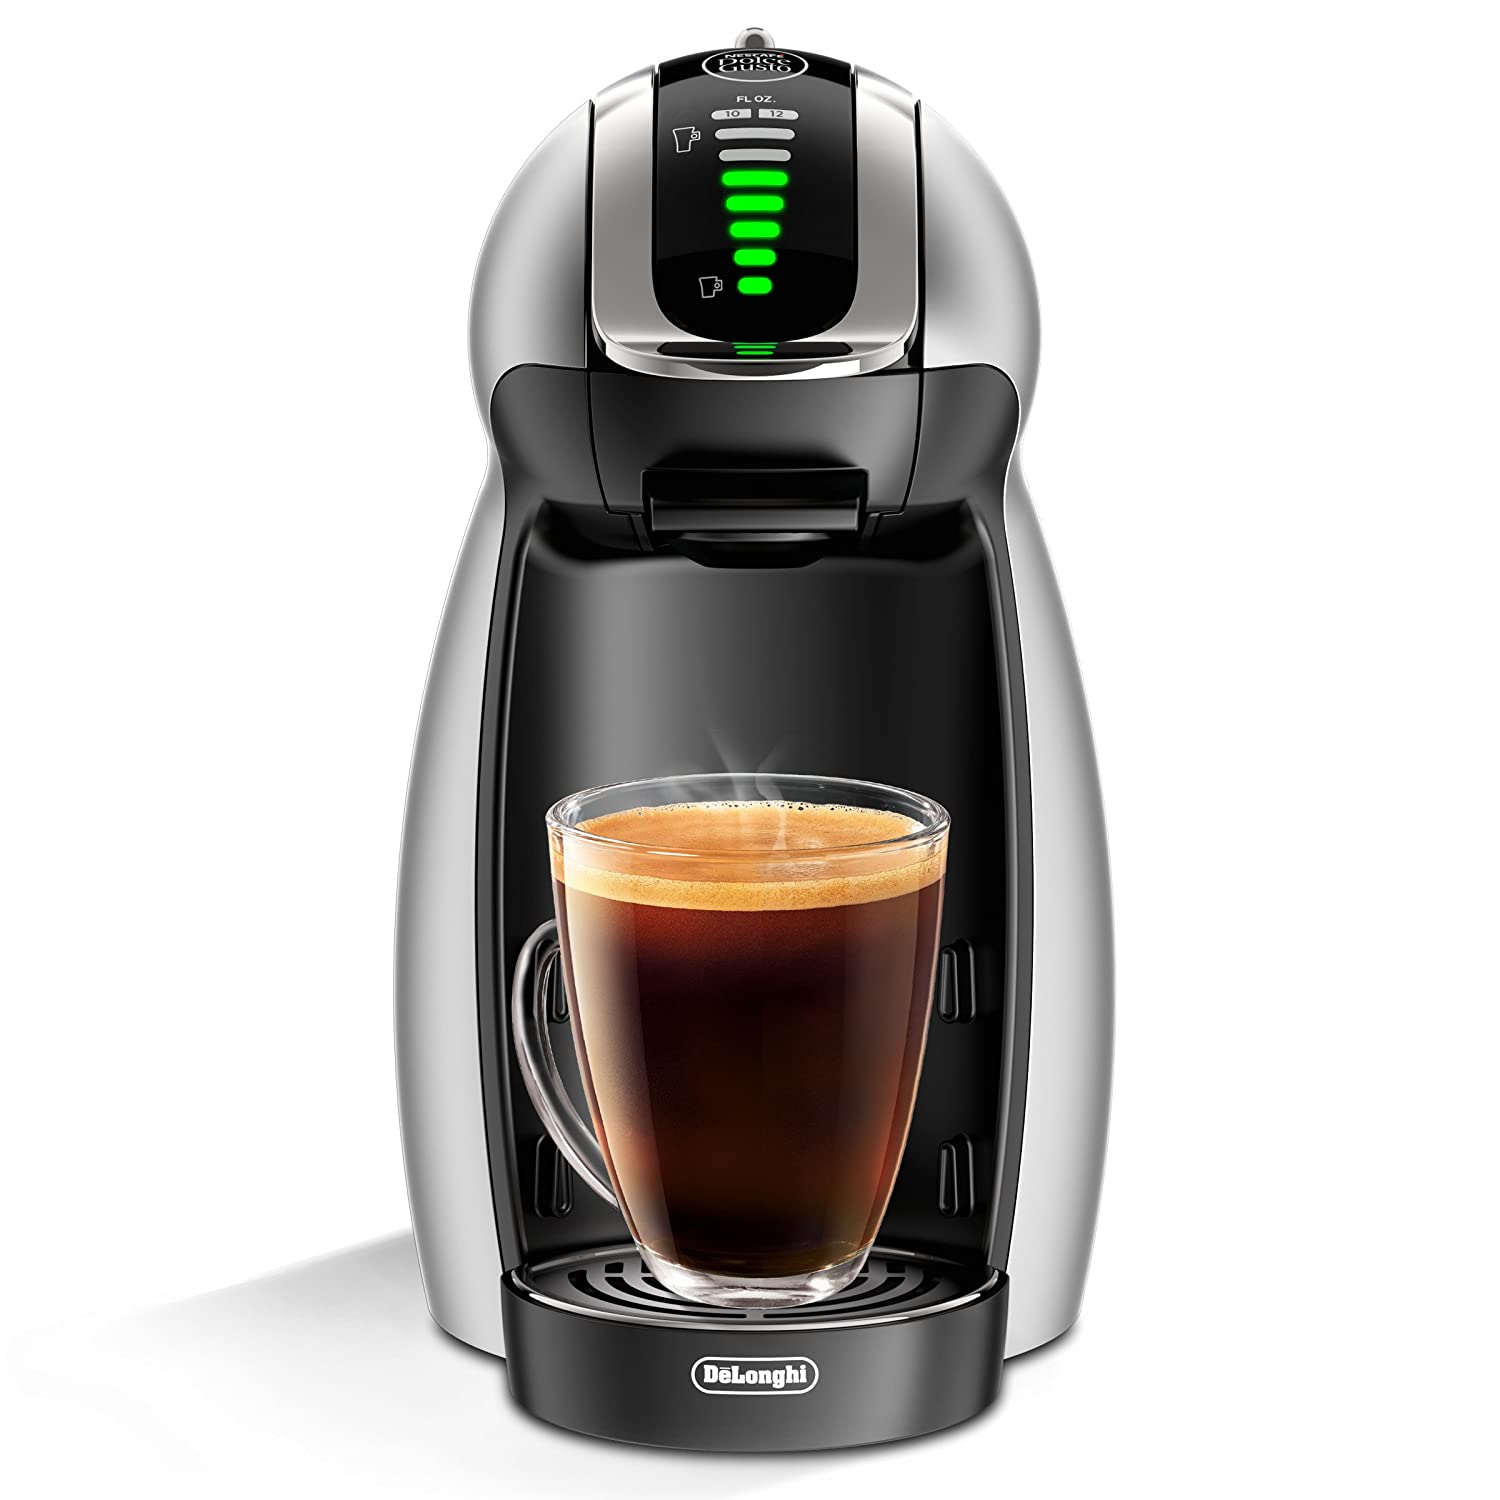 NESCAFÉ Dolce Gusto Genio 2 Coffee, Espresso and Cappuccino Pod Machine, made by De'Longhi America EDG466S